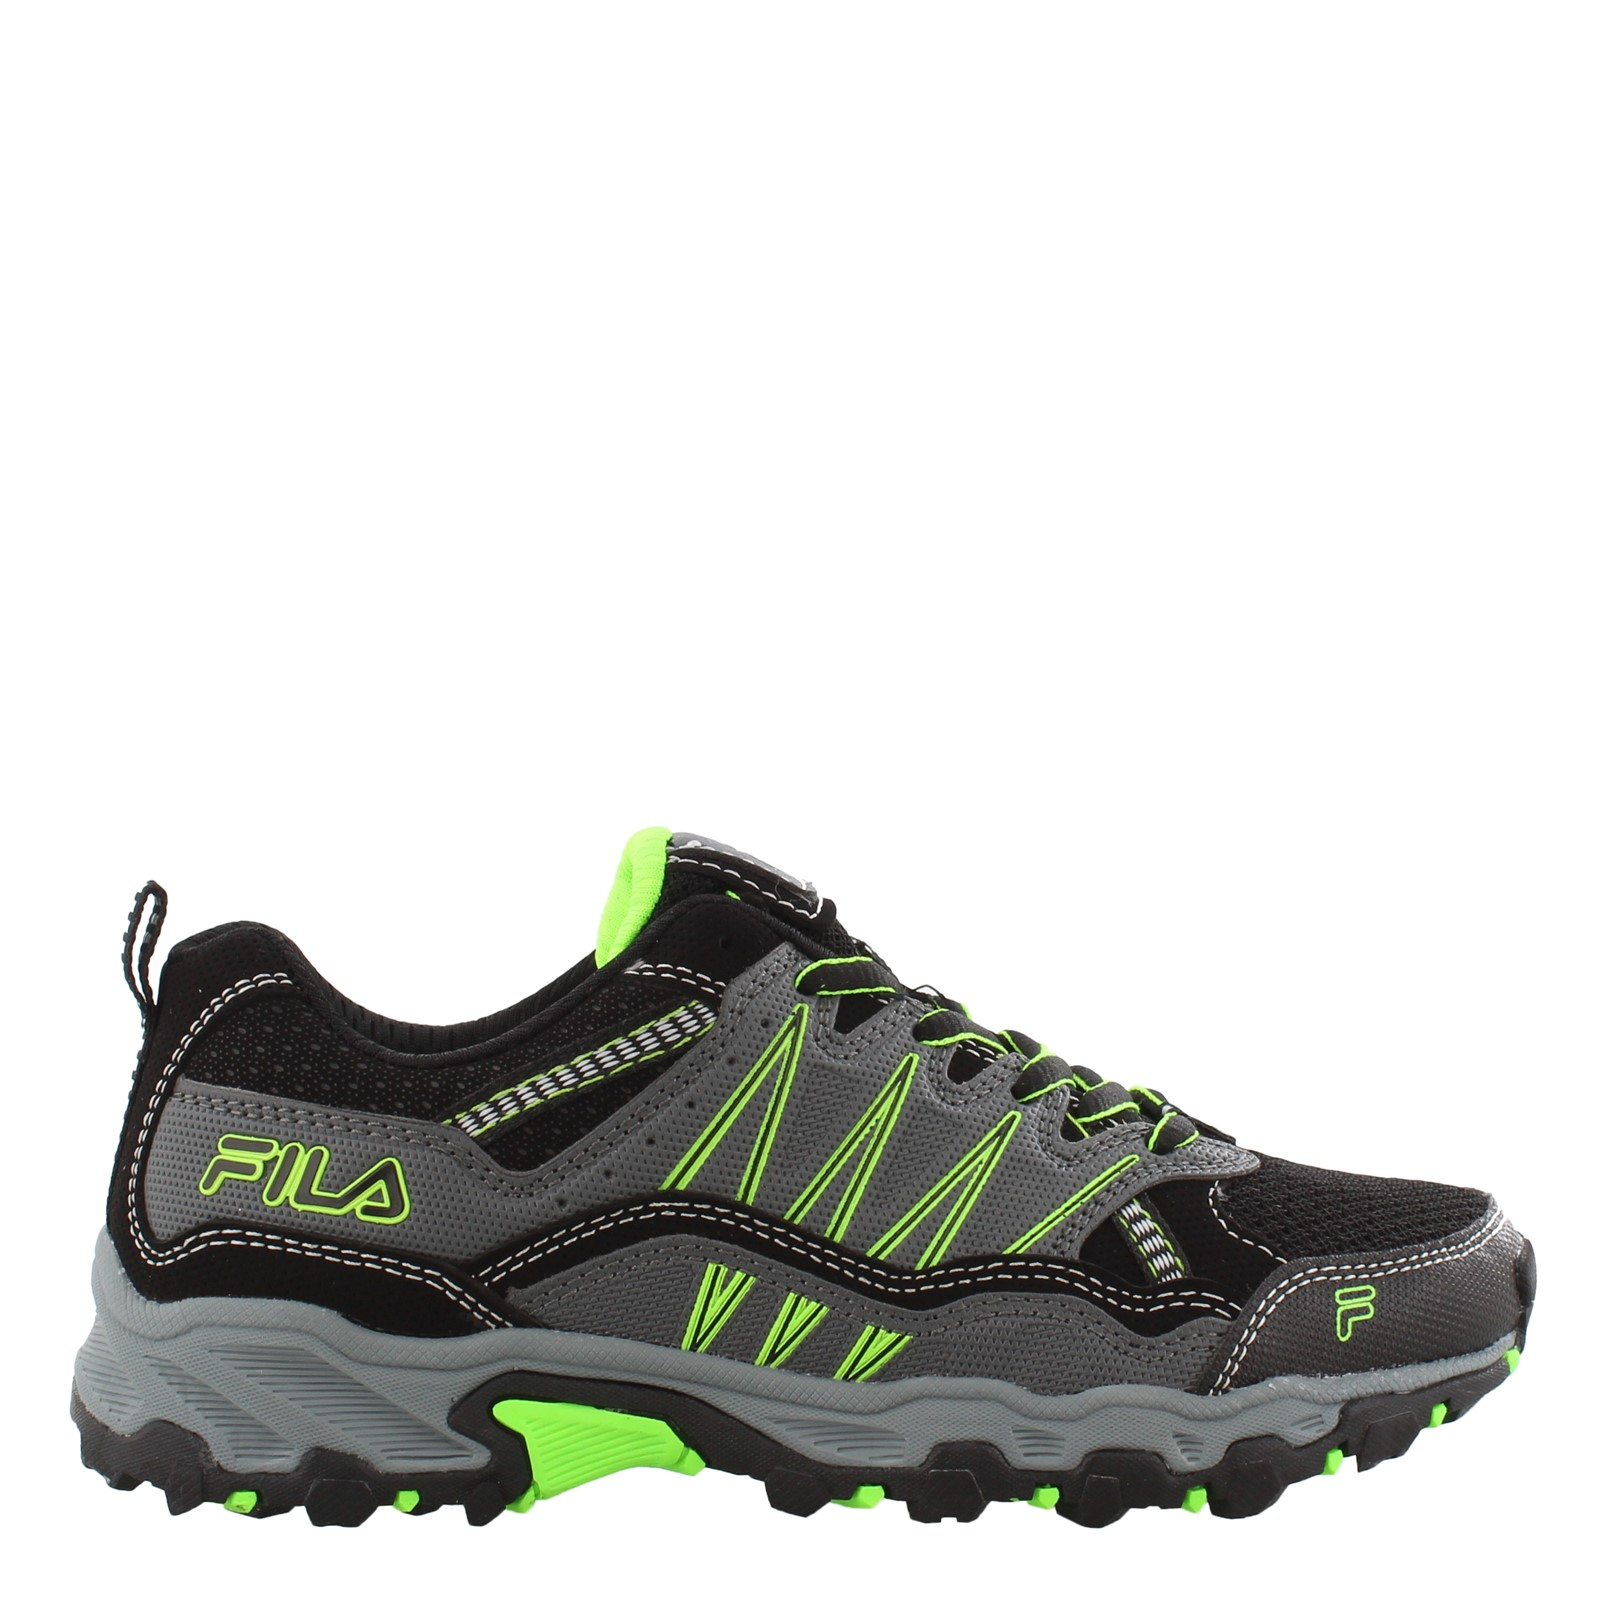 Boy's Fila, At Peake 21 Trail Running Sneaker Big Kid